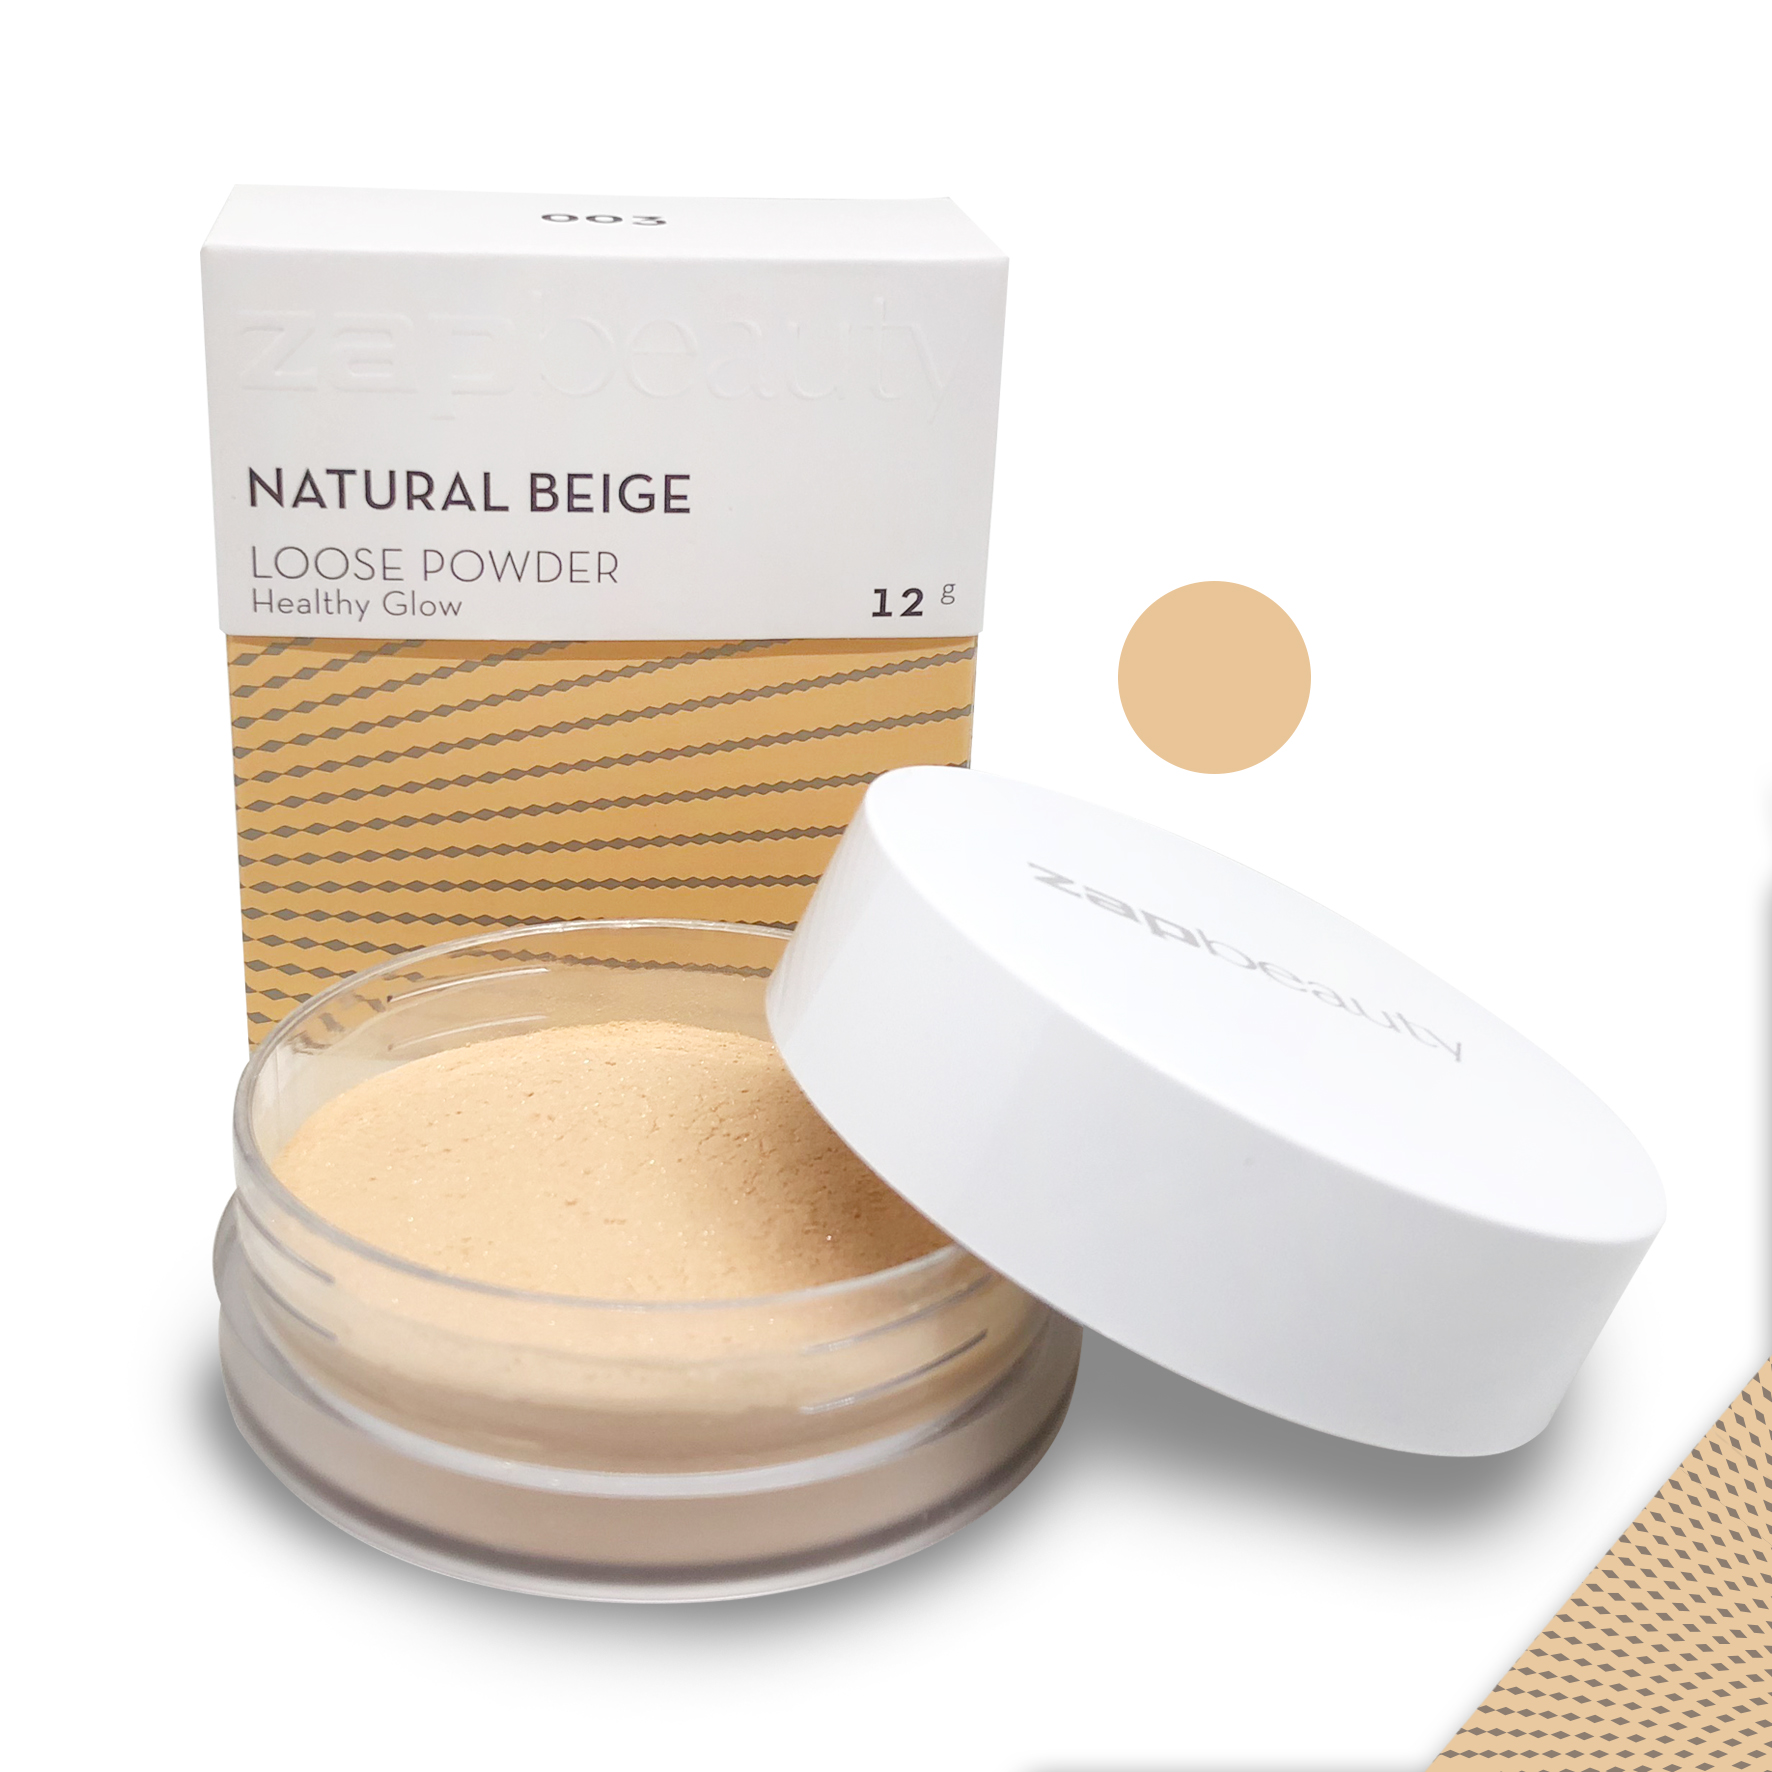 003 Natural Beige - Healthy Glow